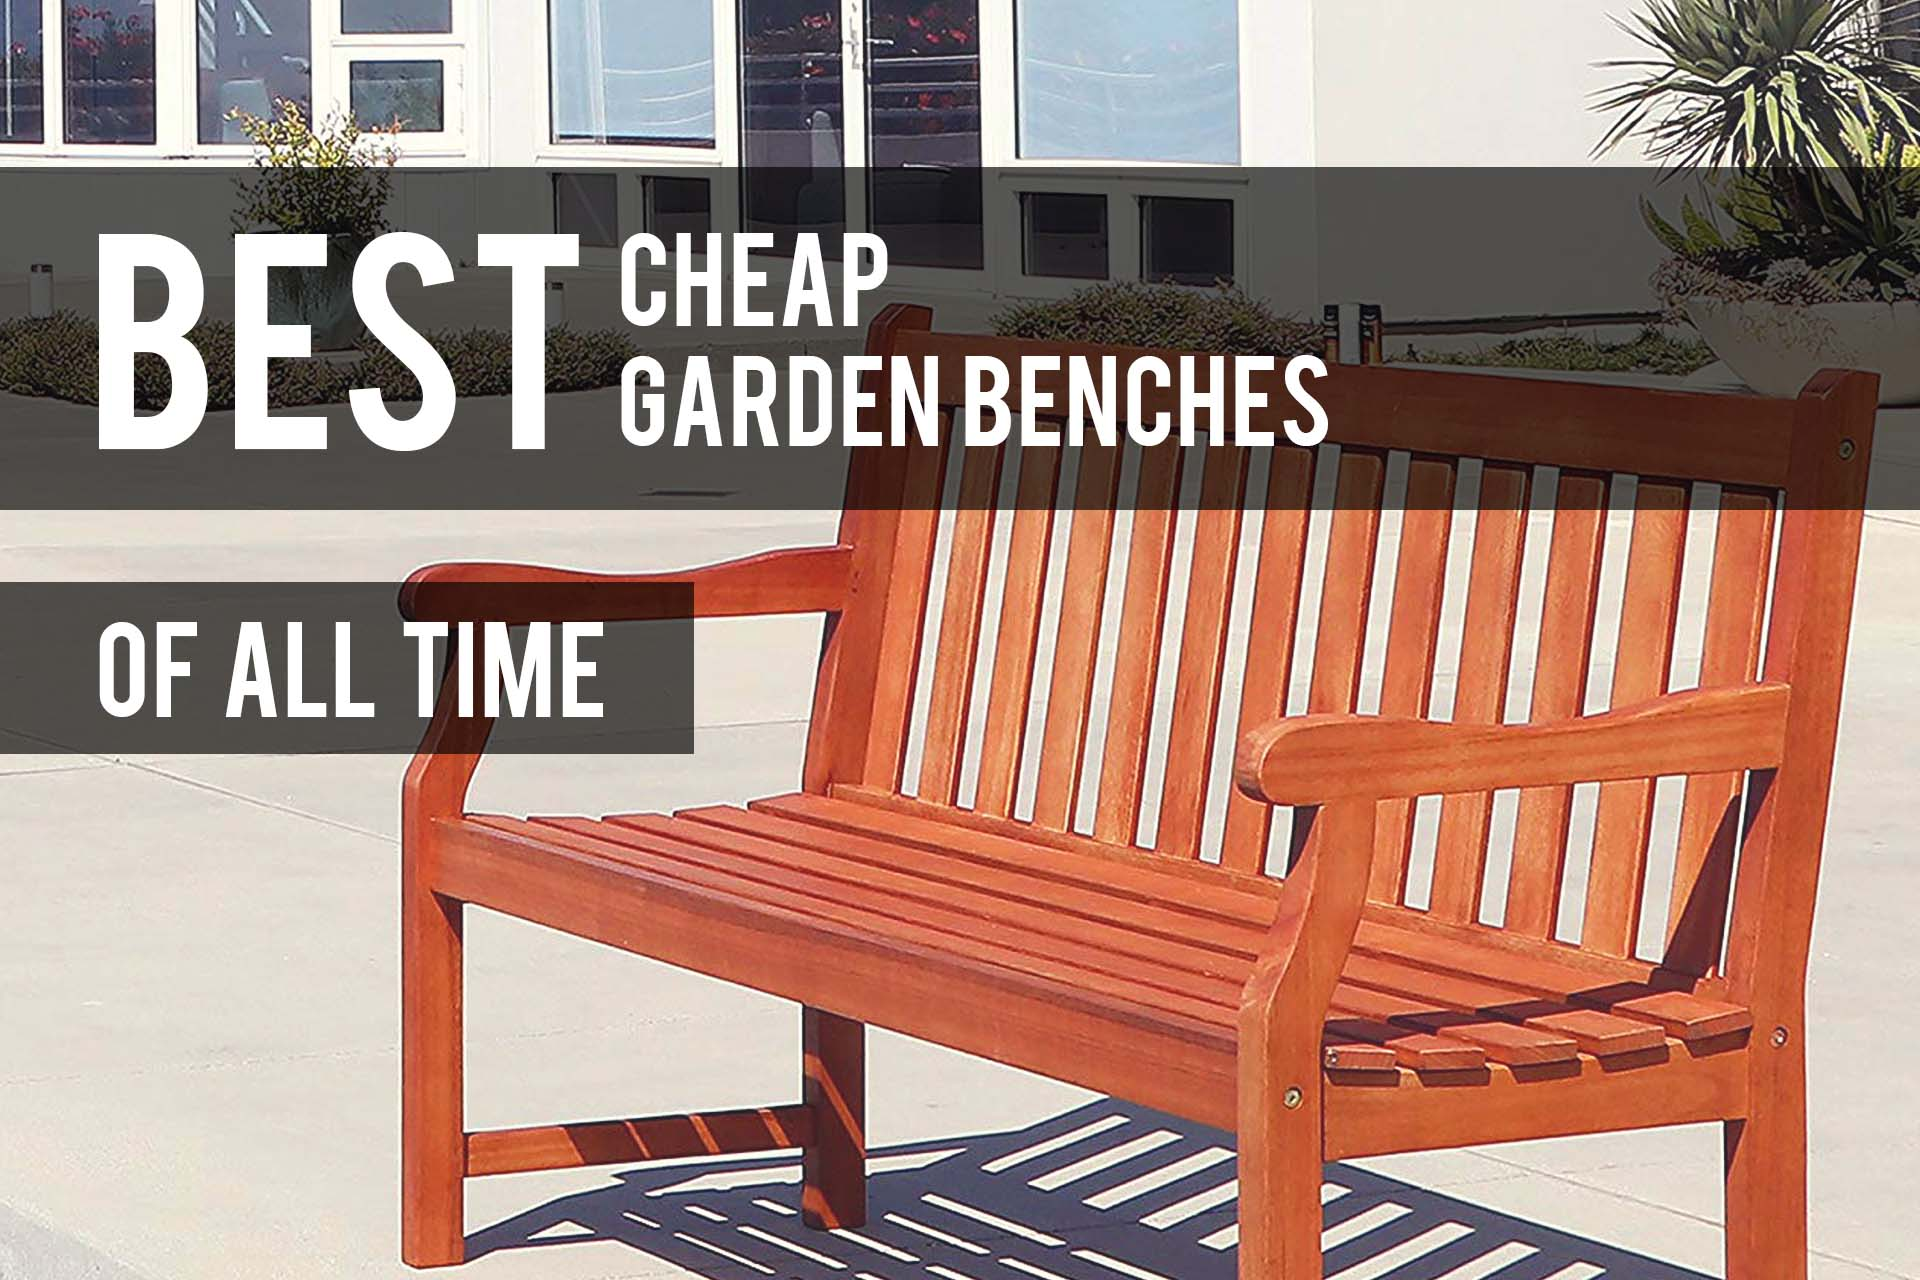 Enjoyable Best Cheap Garden Benches 2019 Reviews The Patio Pro Lamtechconsult Wood Chair Design Ideas Lamtechconsultcom